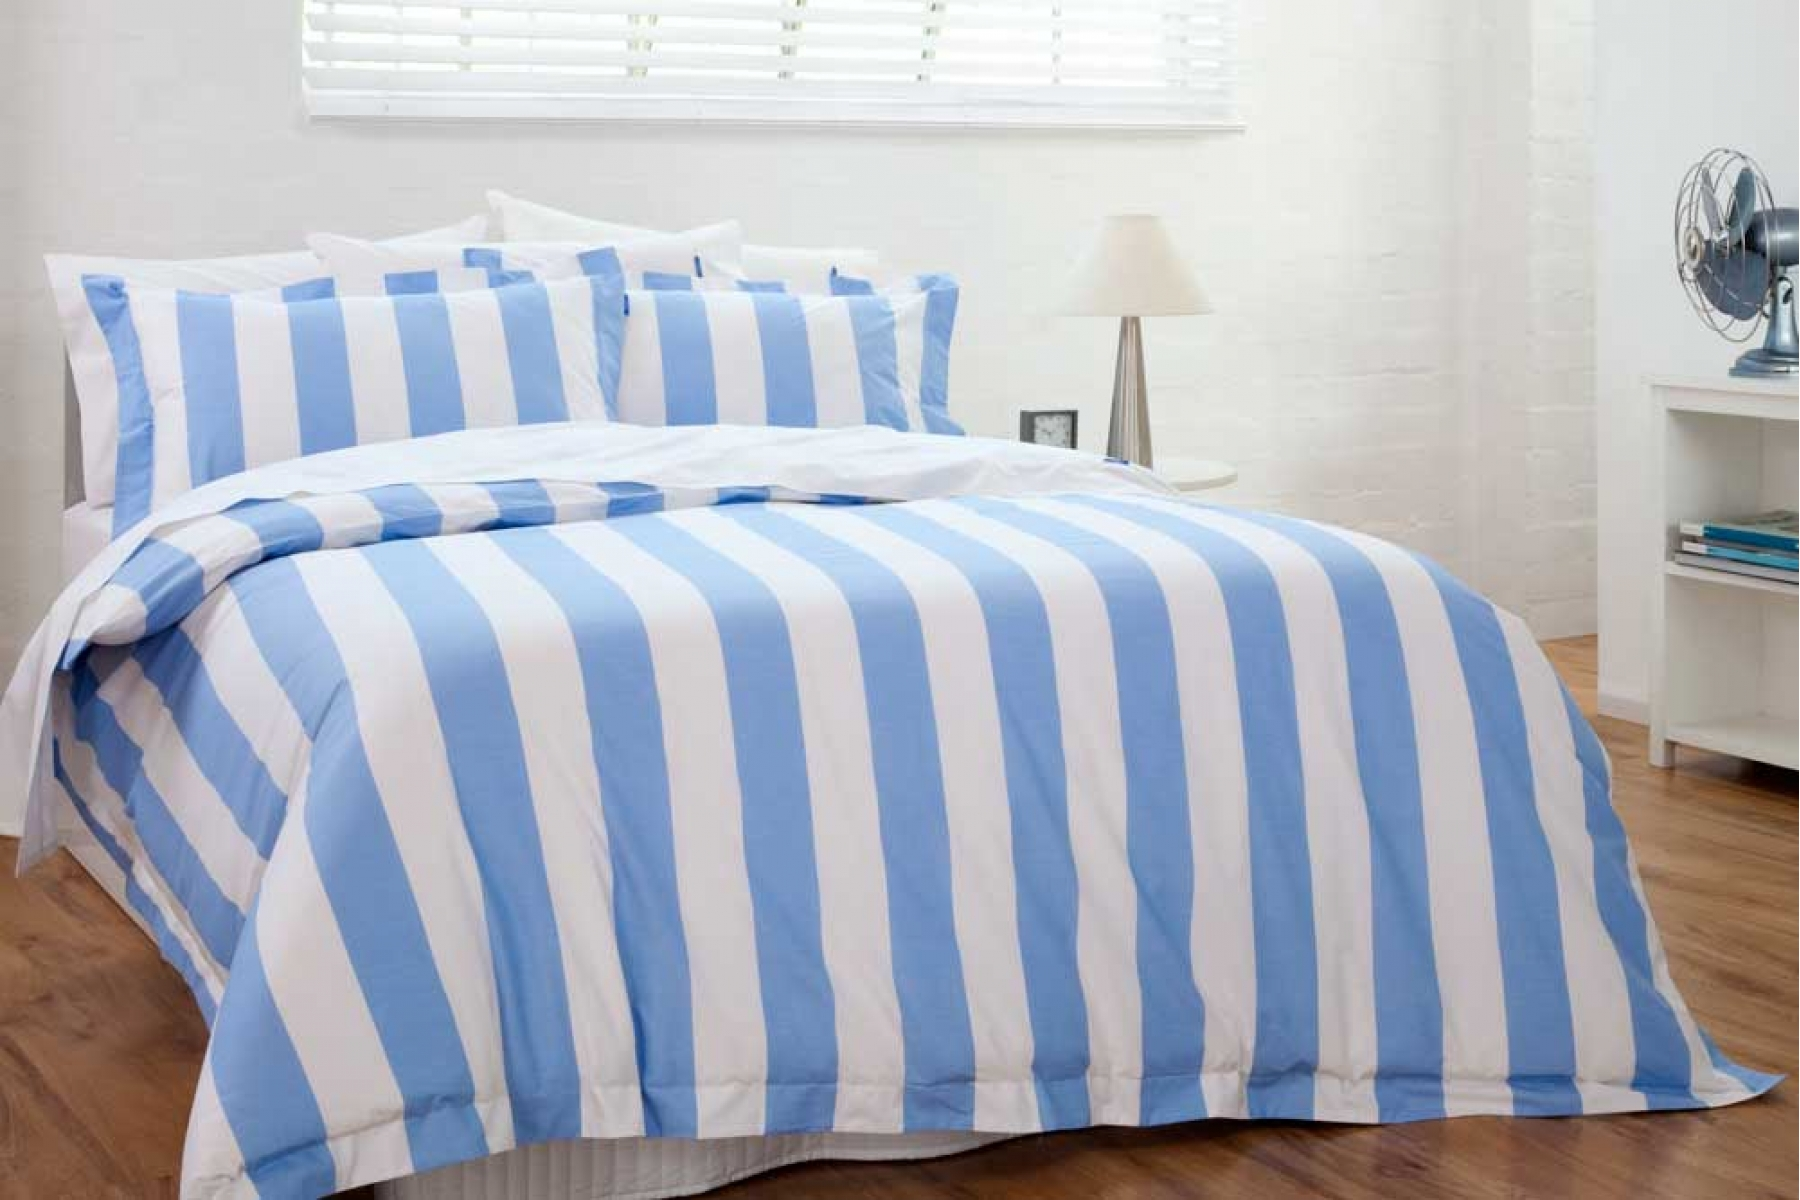 Maddison Quilt Cover Set | Classic : quilt protector - Adamdwight.com